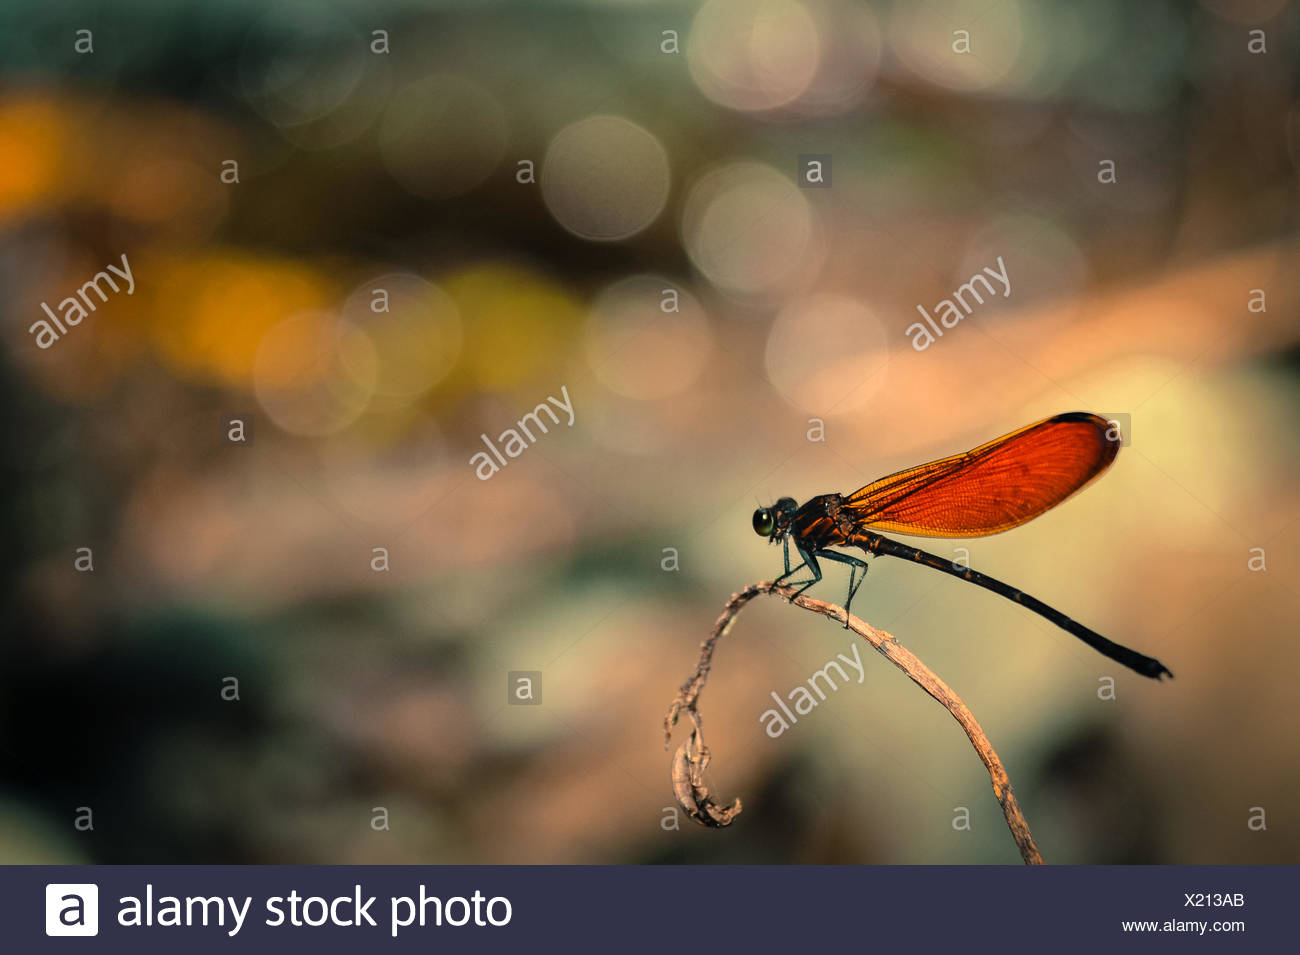 Close-up of dragonfly on twig, Indonesia - Stock Image